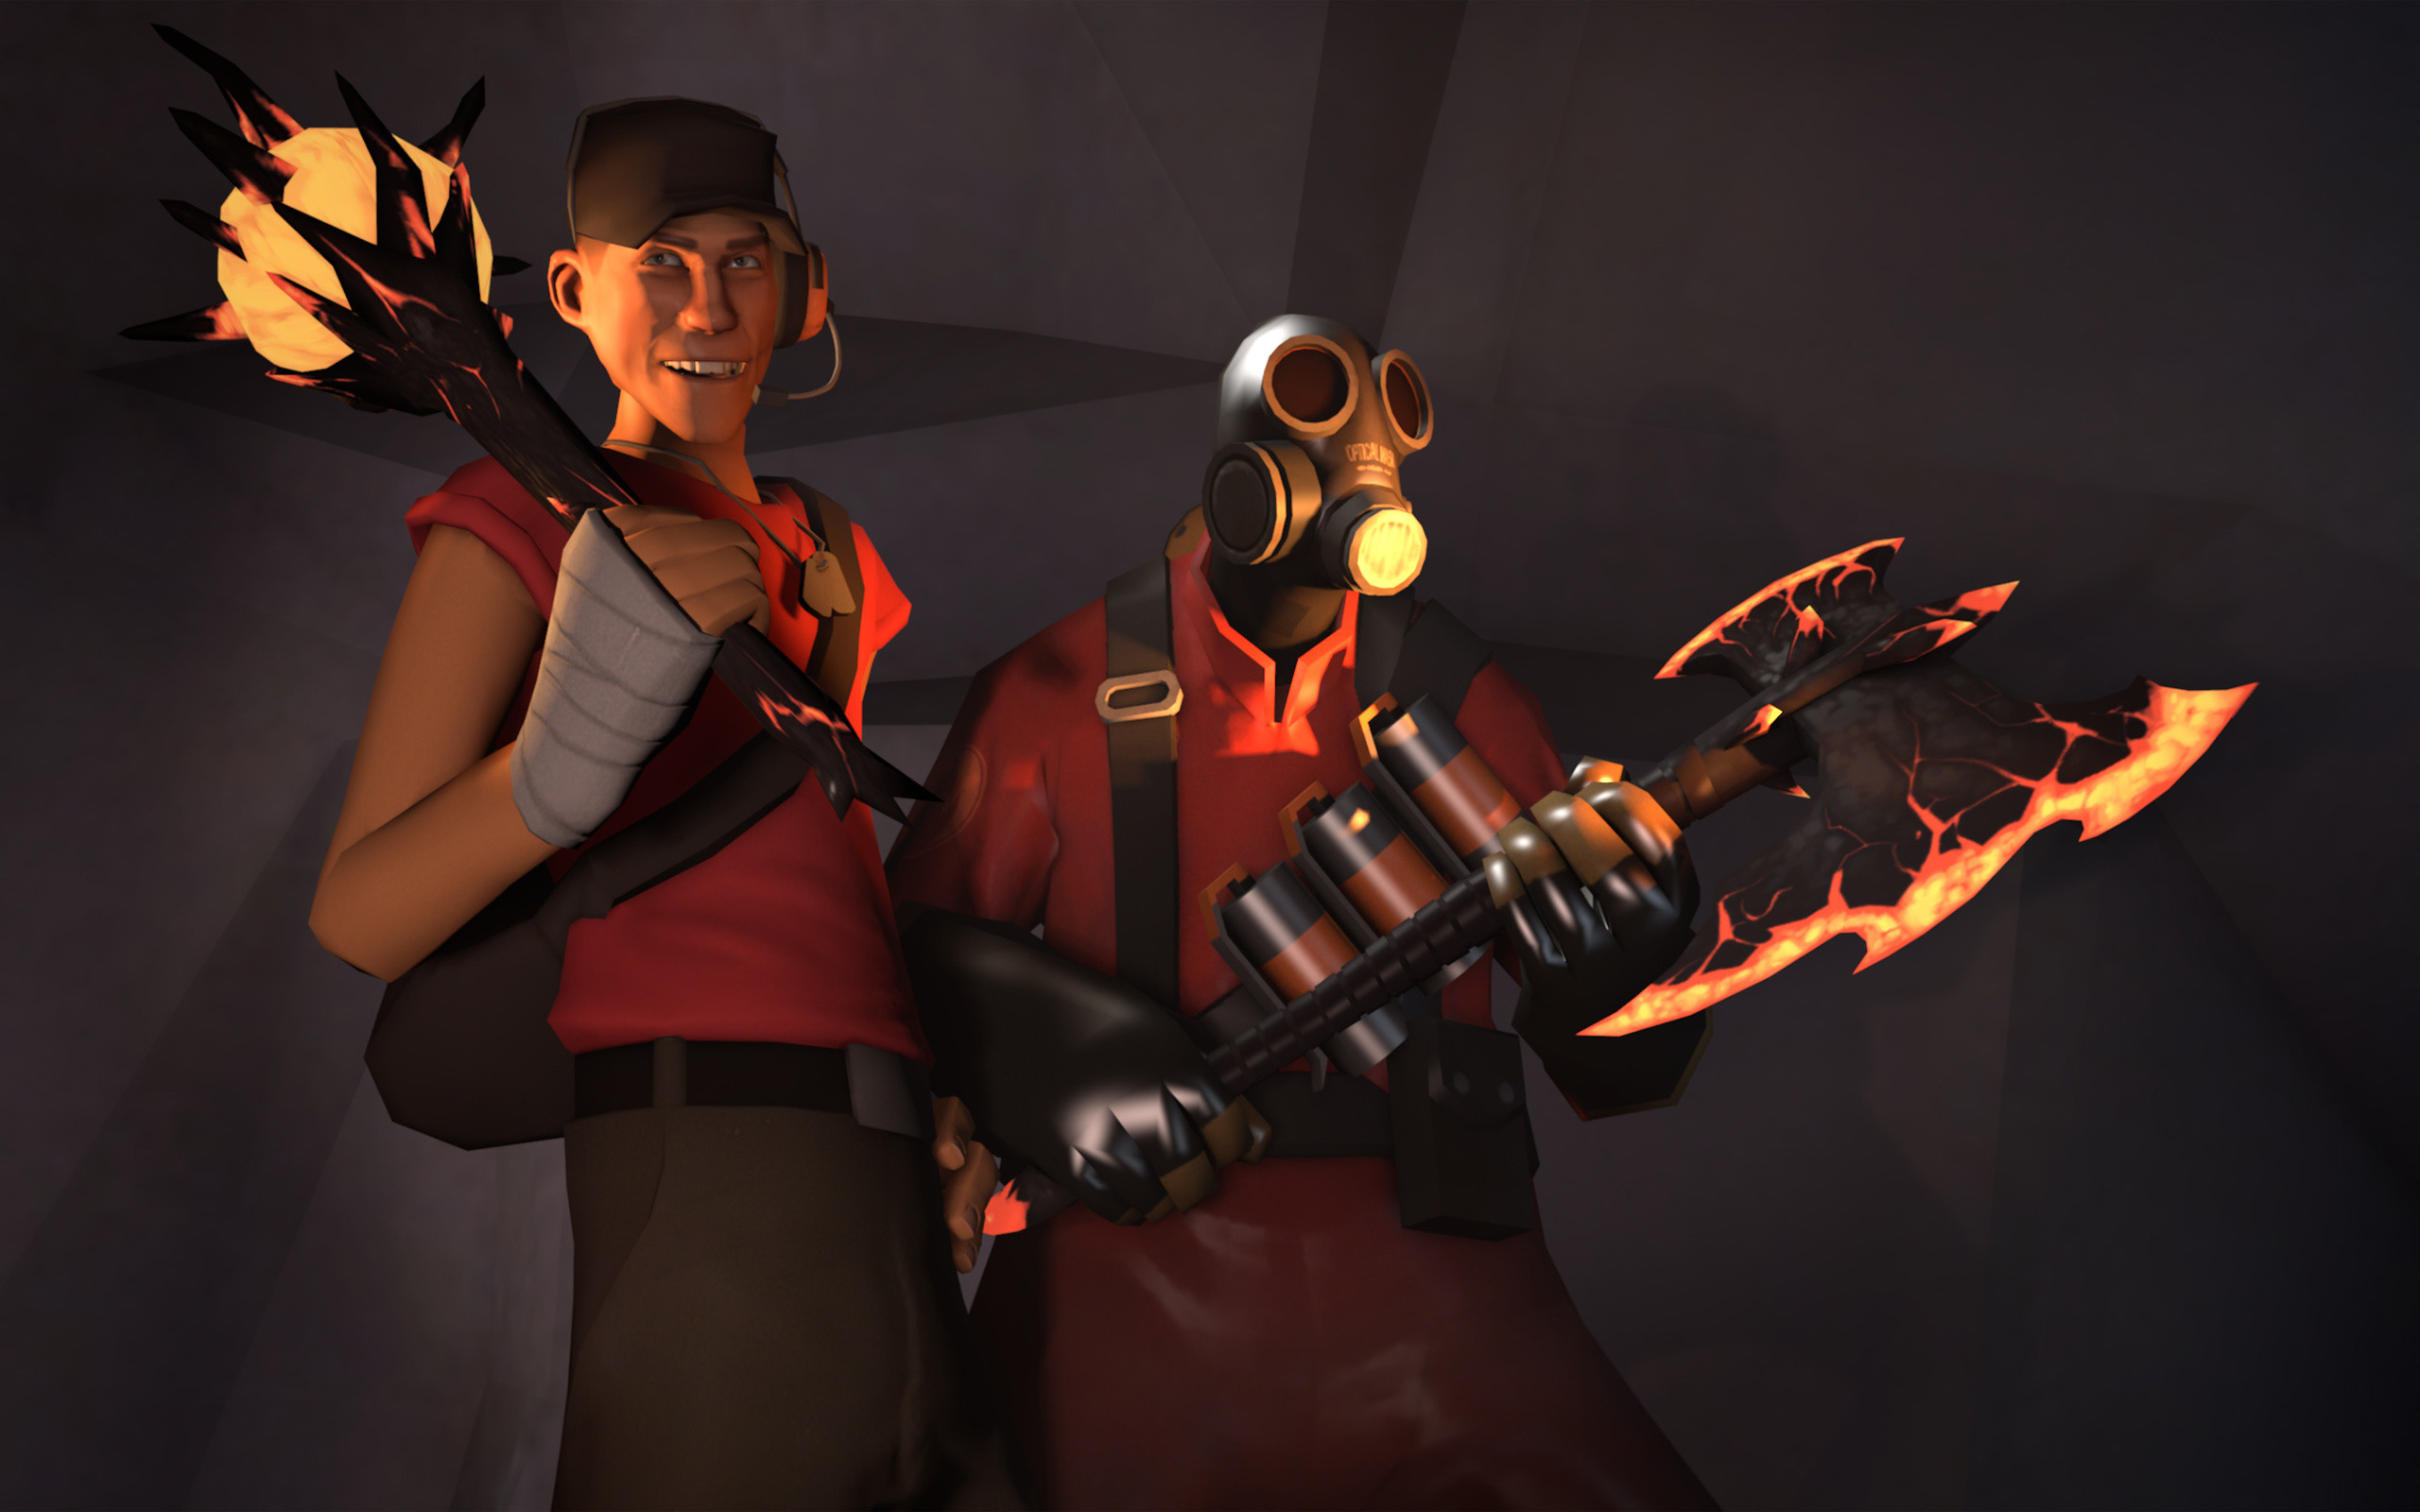 2560x1600 Friday 13th November 2015 04PM -  Team Fortress 2 Desktop  Wallpapers - Free Games Wallpapers